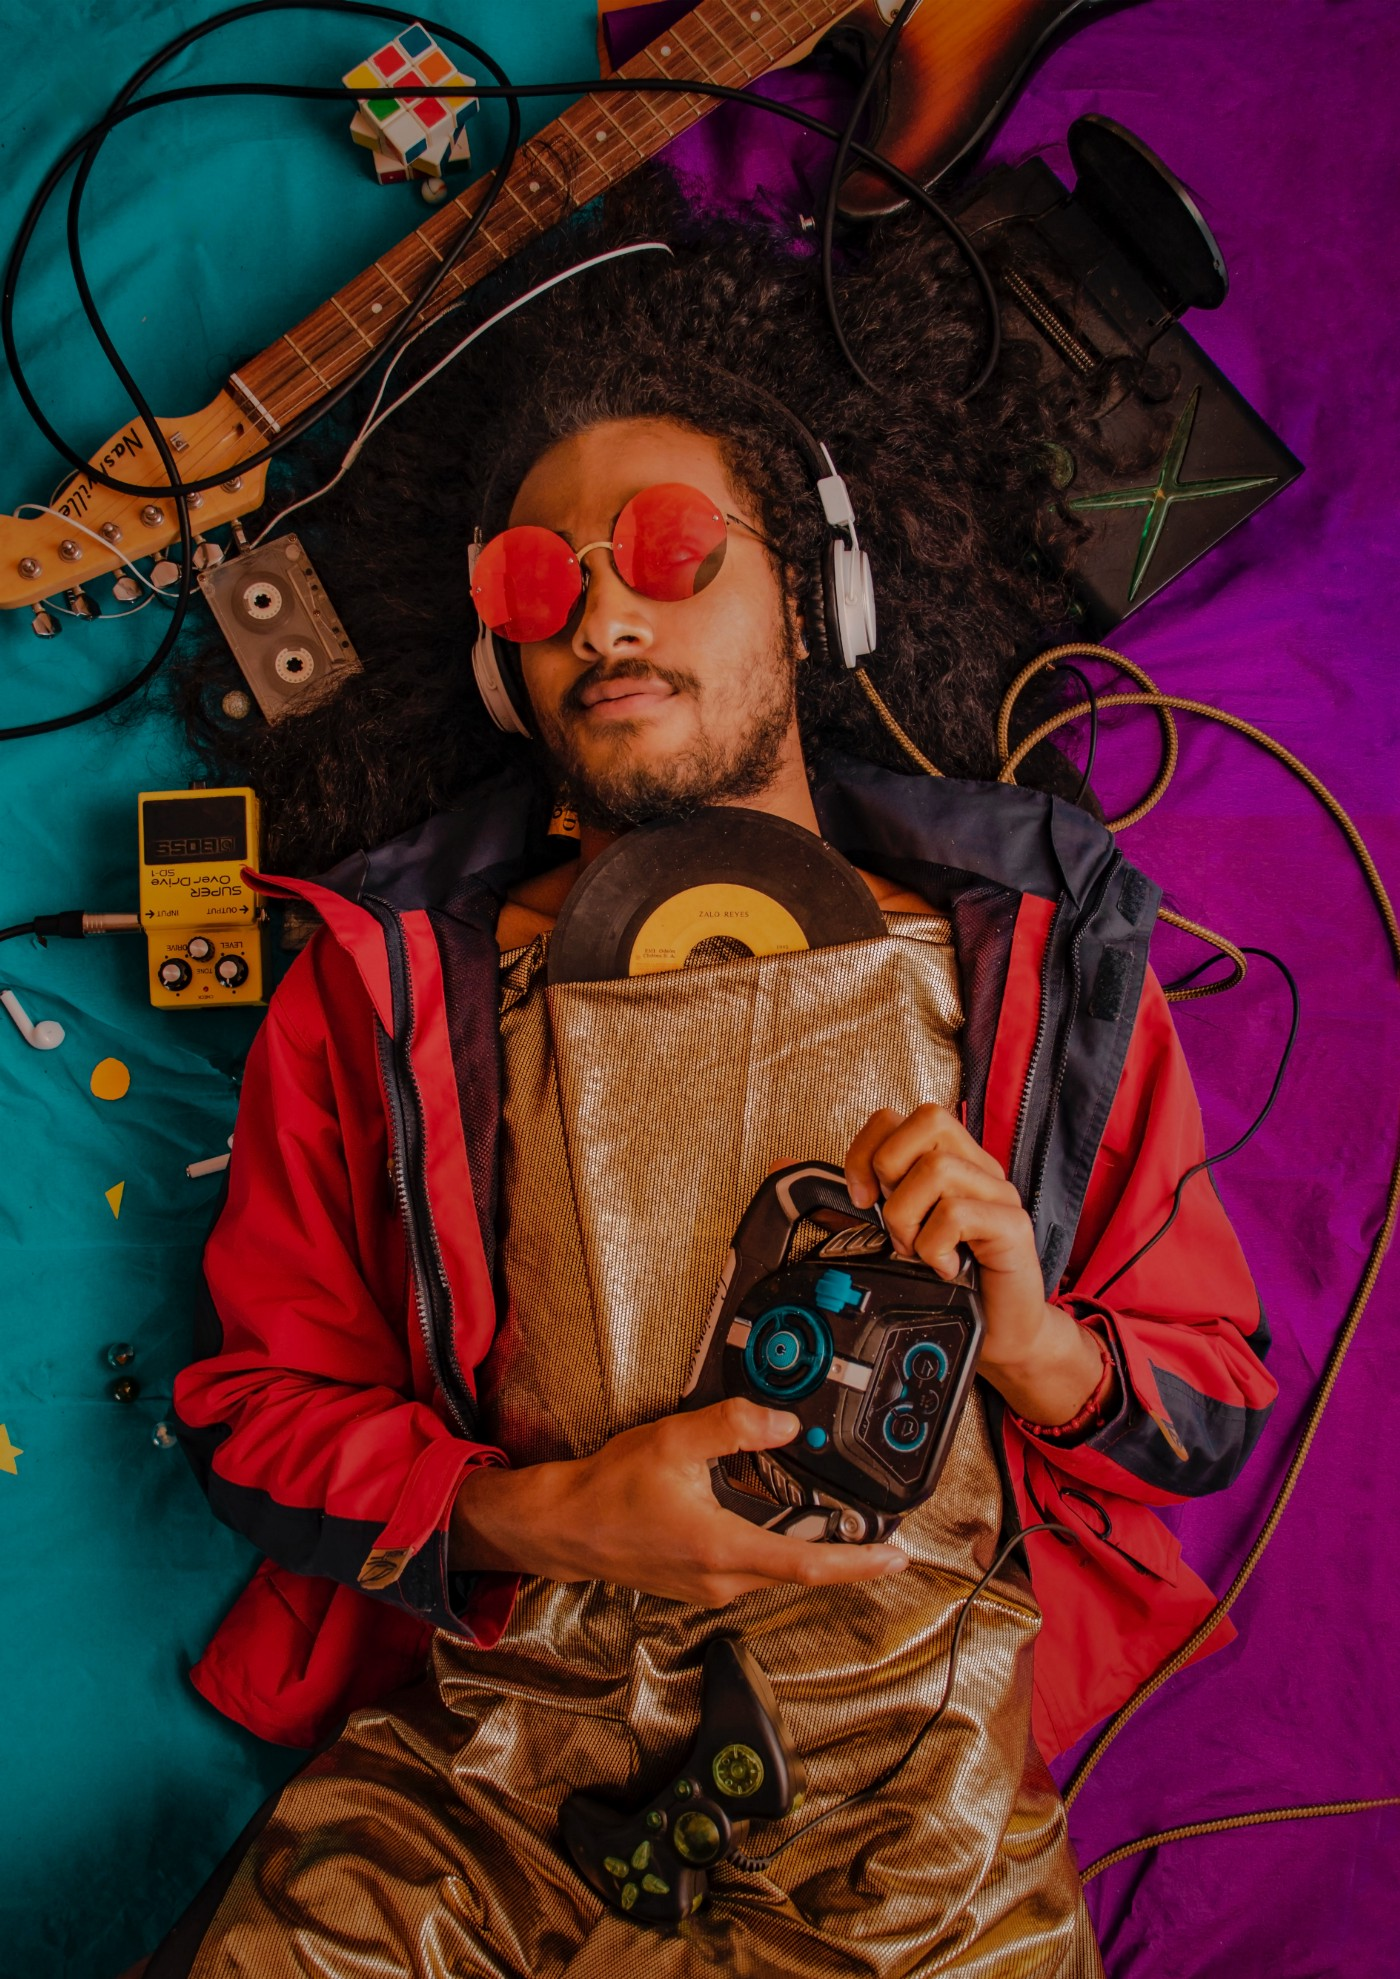 Person with dreads & facial hair wearing pink, round glasses amidst by music technology & holding vinyl & game controllers